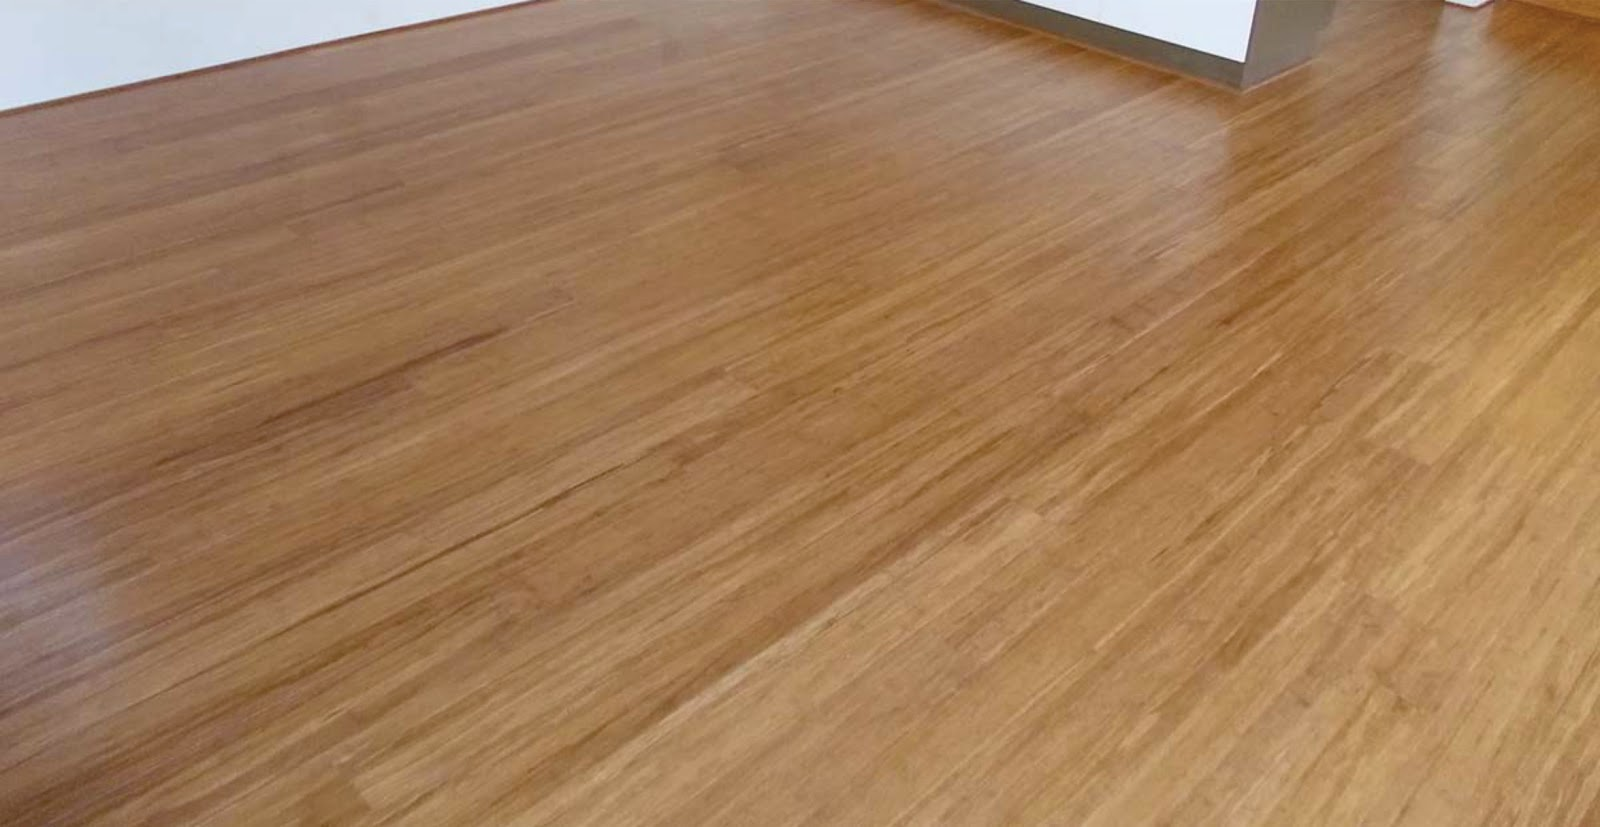 Bamboo grove photo bamboo hardwood flooring for What flooring is best